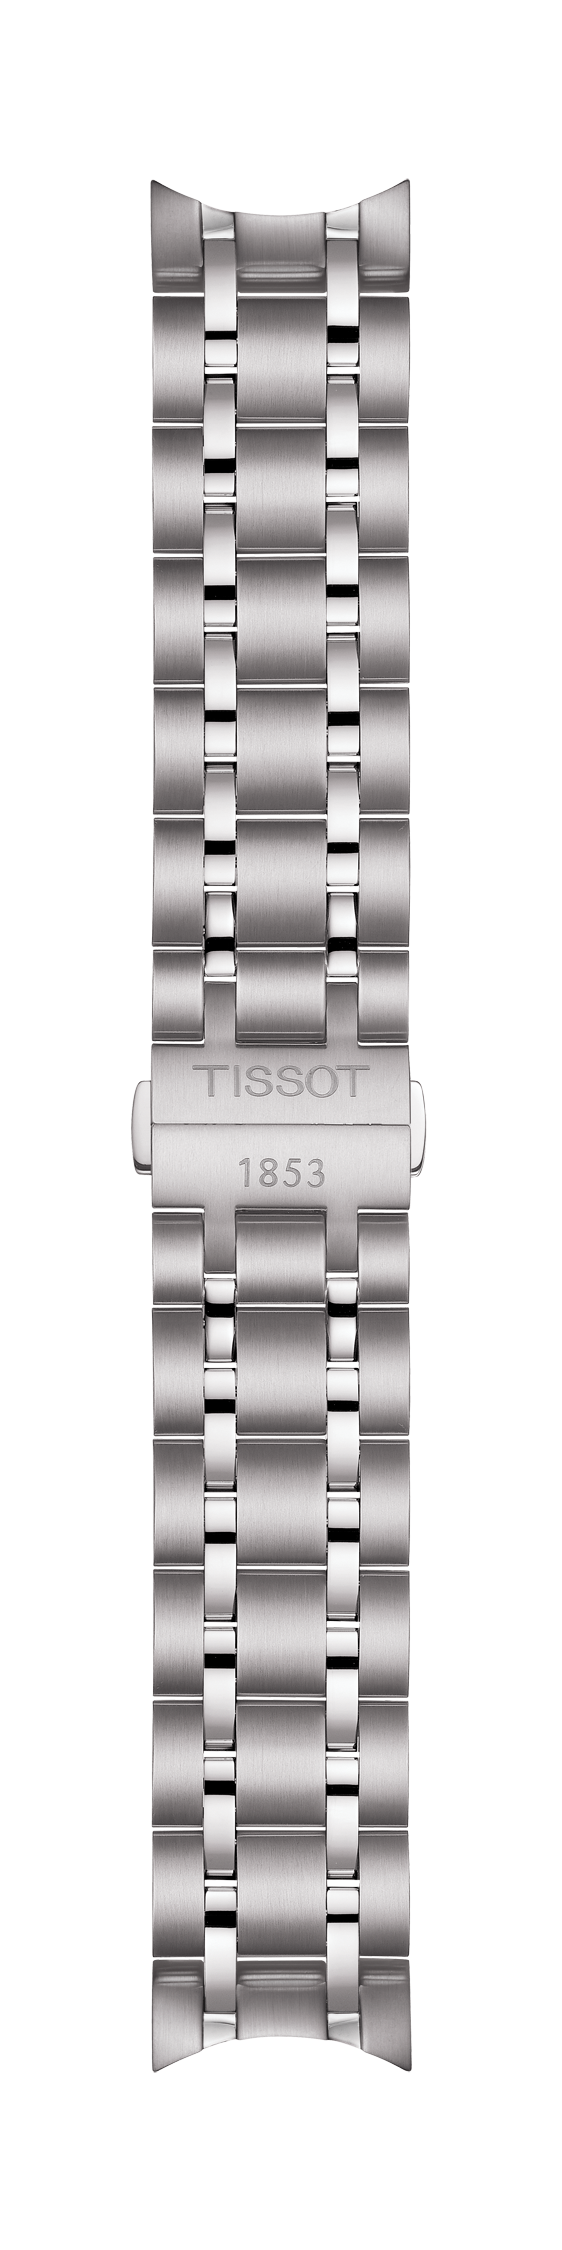 Tissot Couturier T035407A Stainless Steel Watch Bracelet